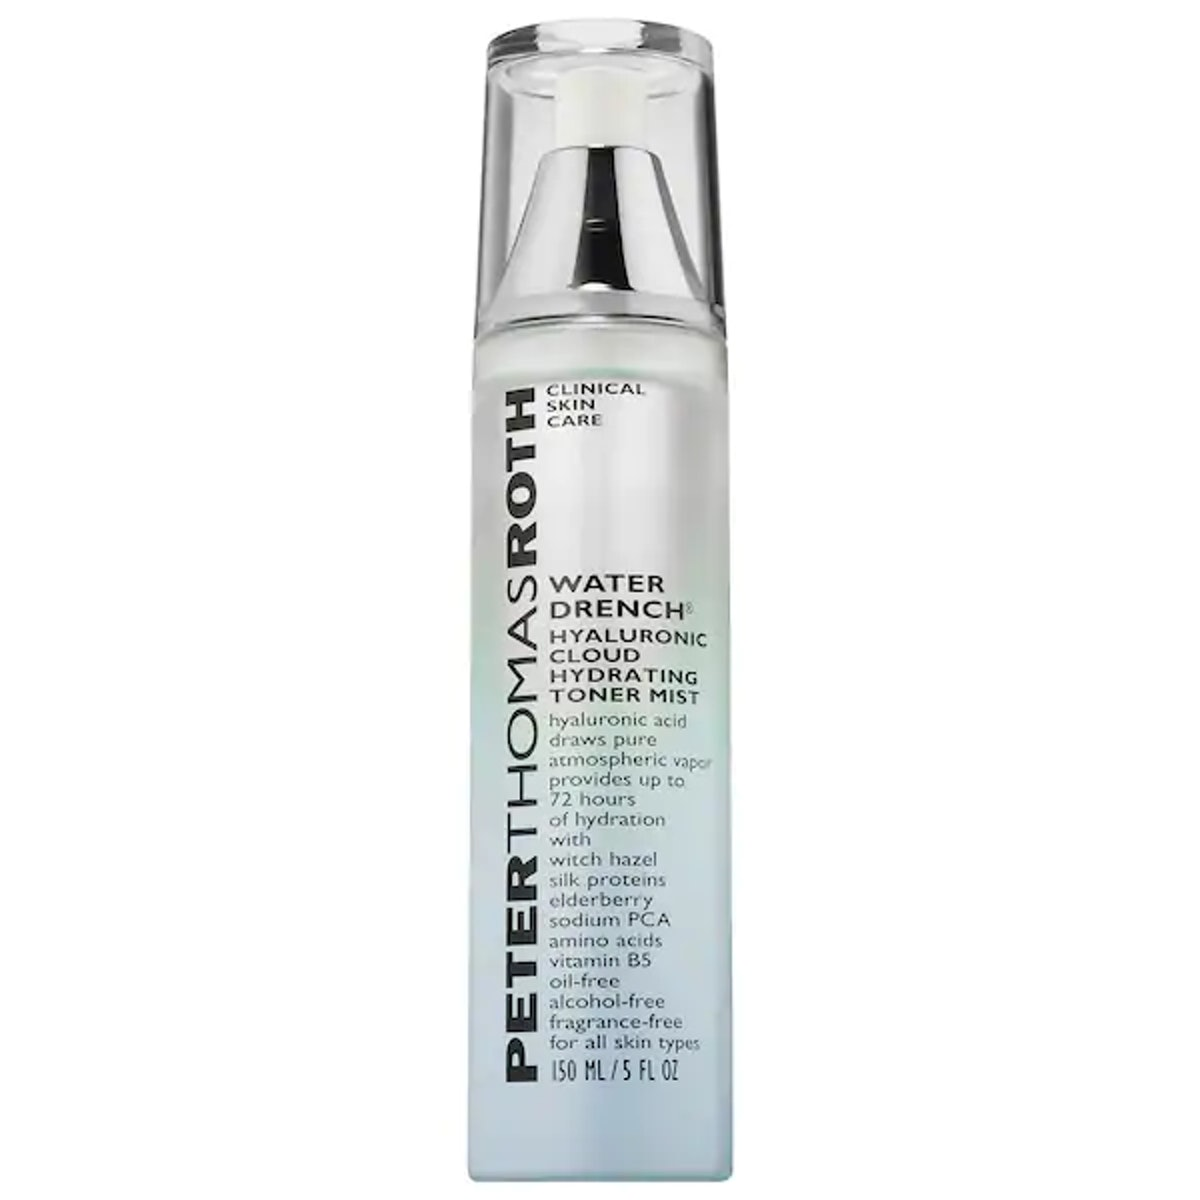 Peter Thomas Roth Water Drench Hyaluronic Cloud Hydrating Toner Mist